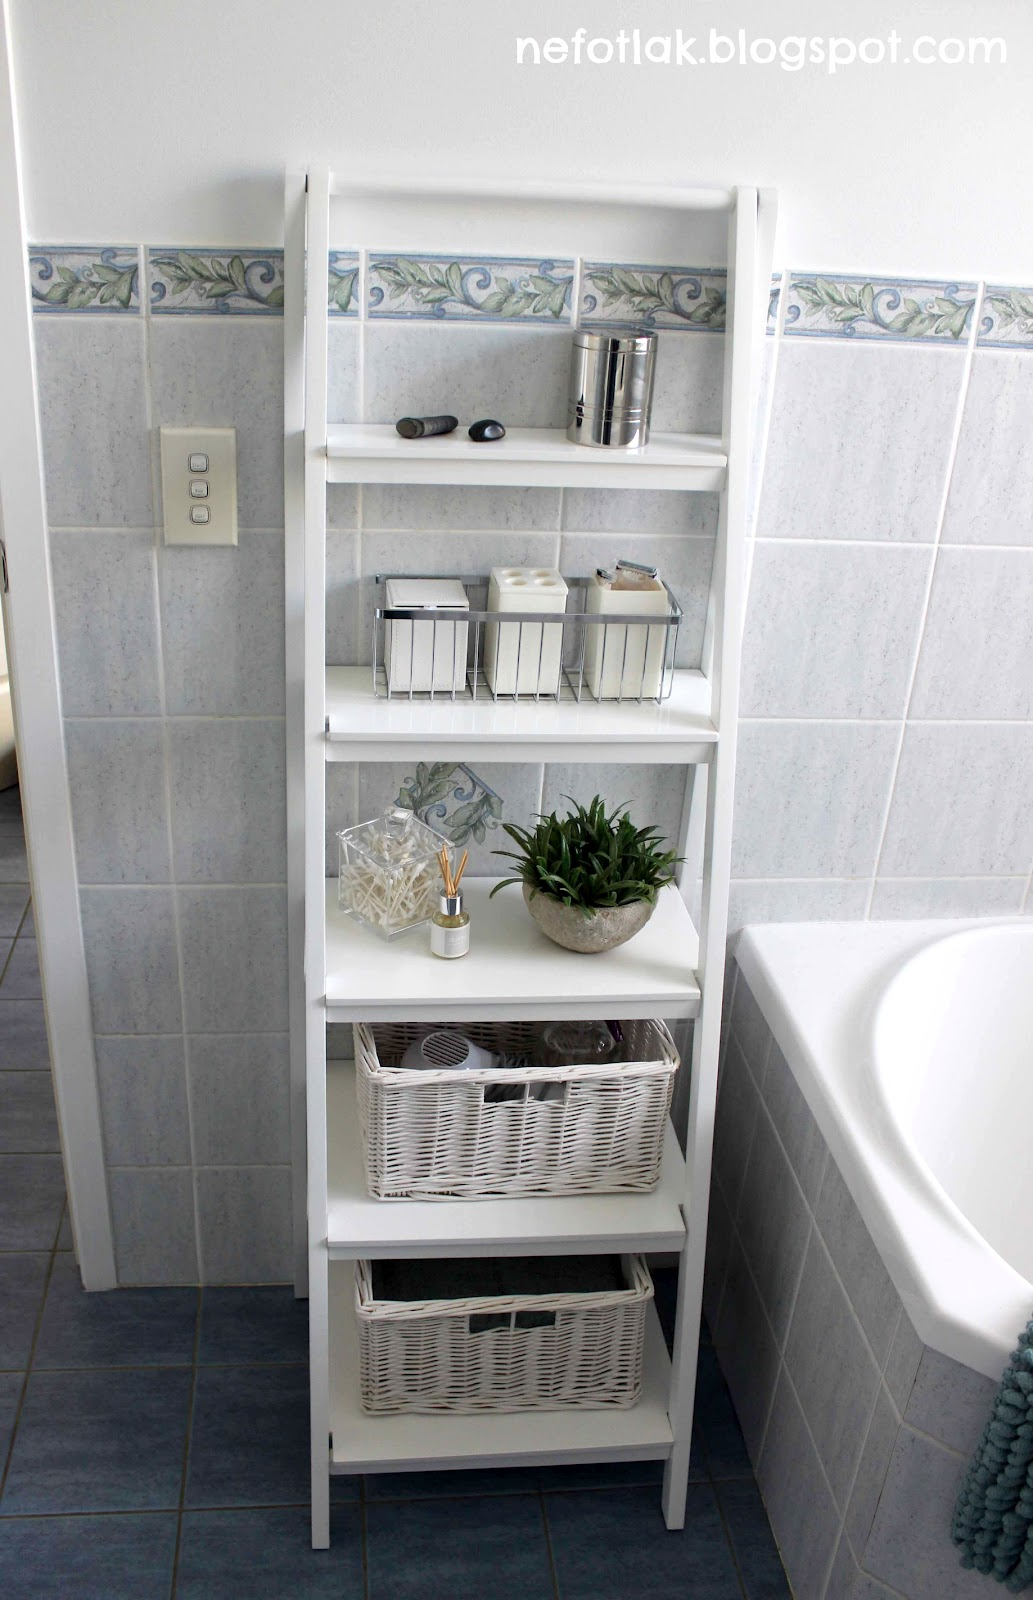 Some Things For The Bathroom